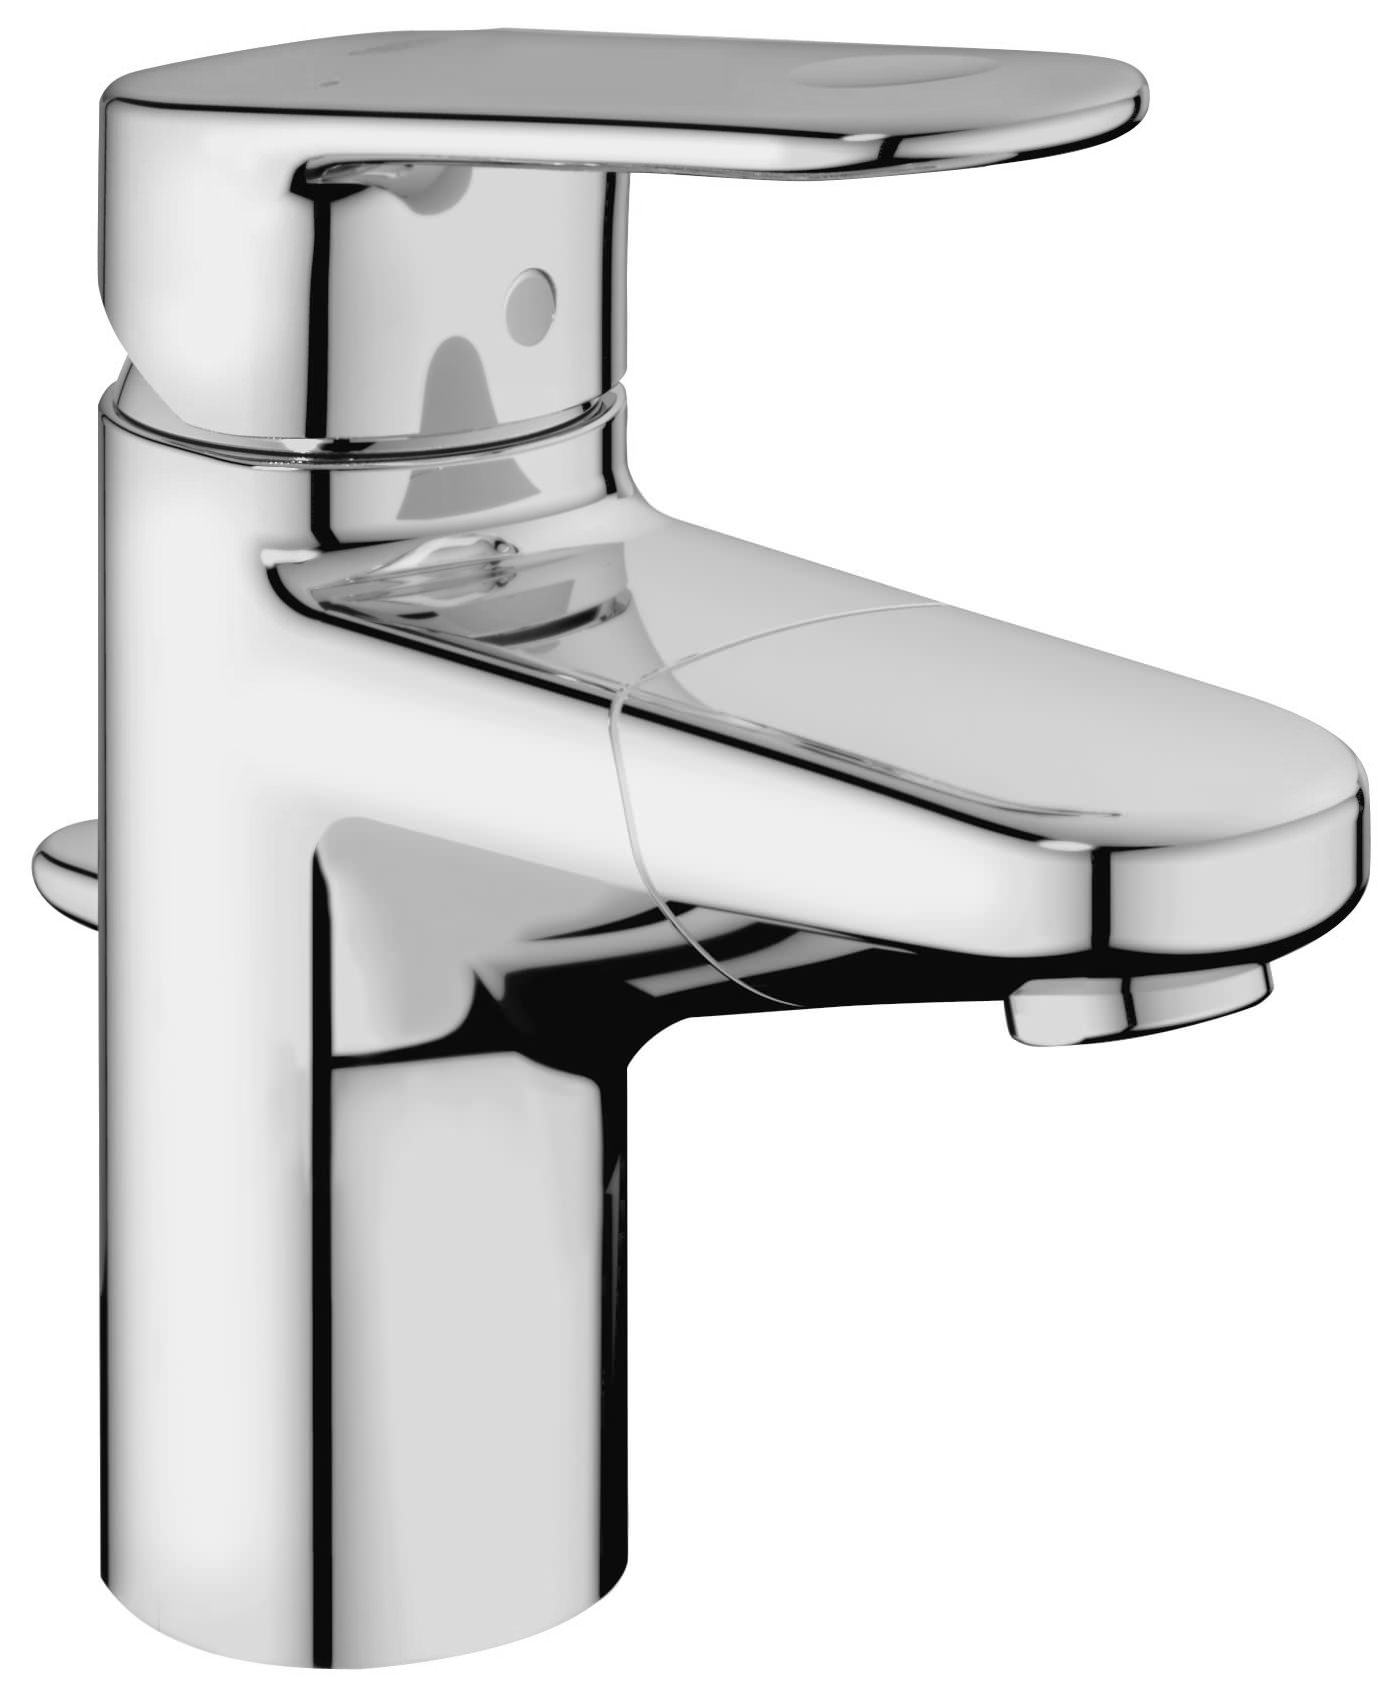 Grohe Europlus Single Lever Basin Mixer Tap With Pull Out Spout 33155002